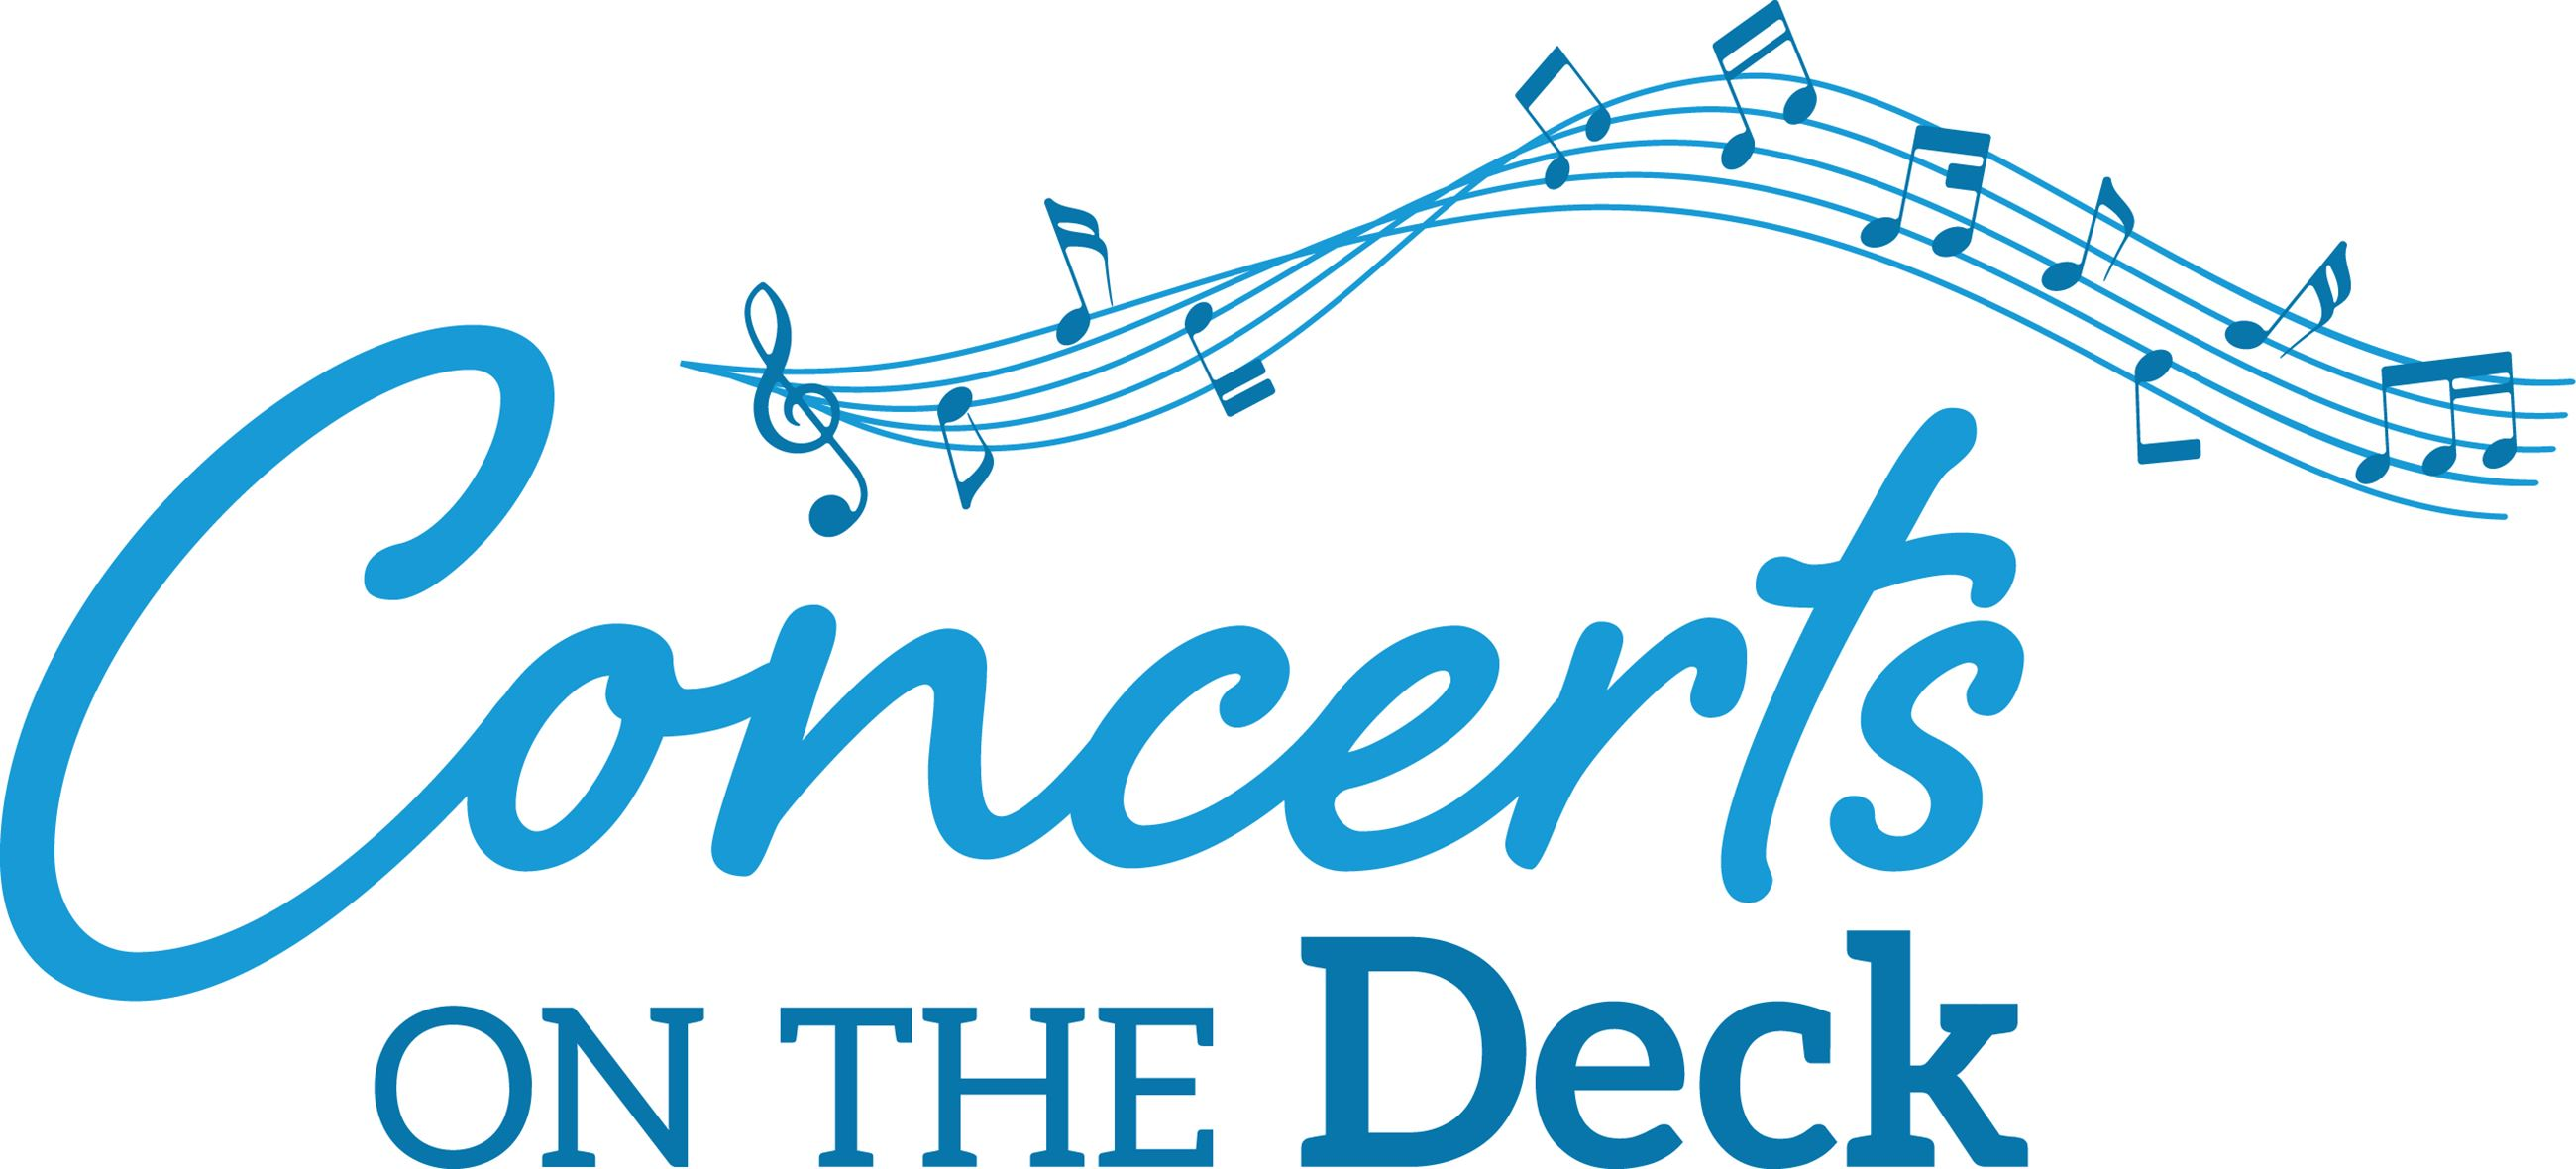 Concerts on the Deck logo